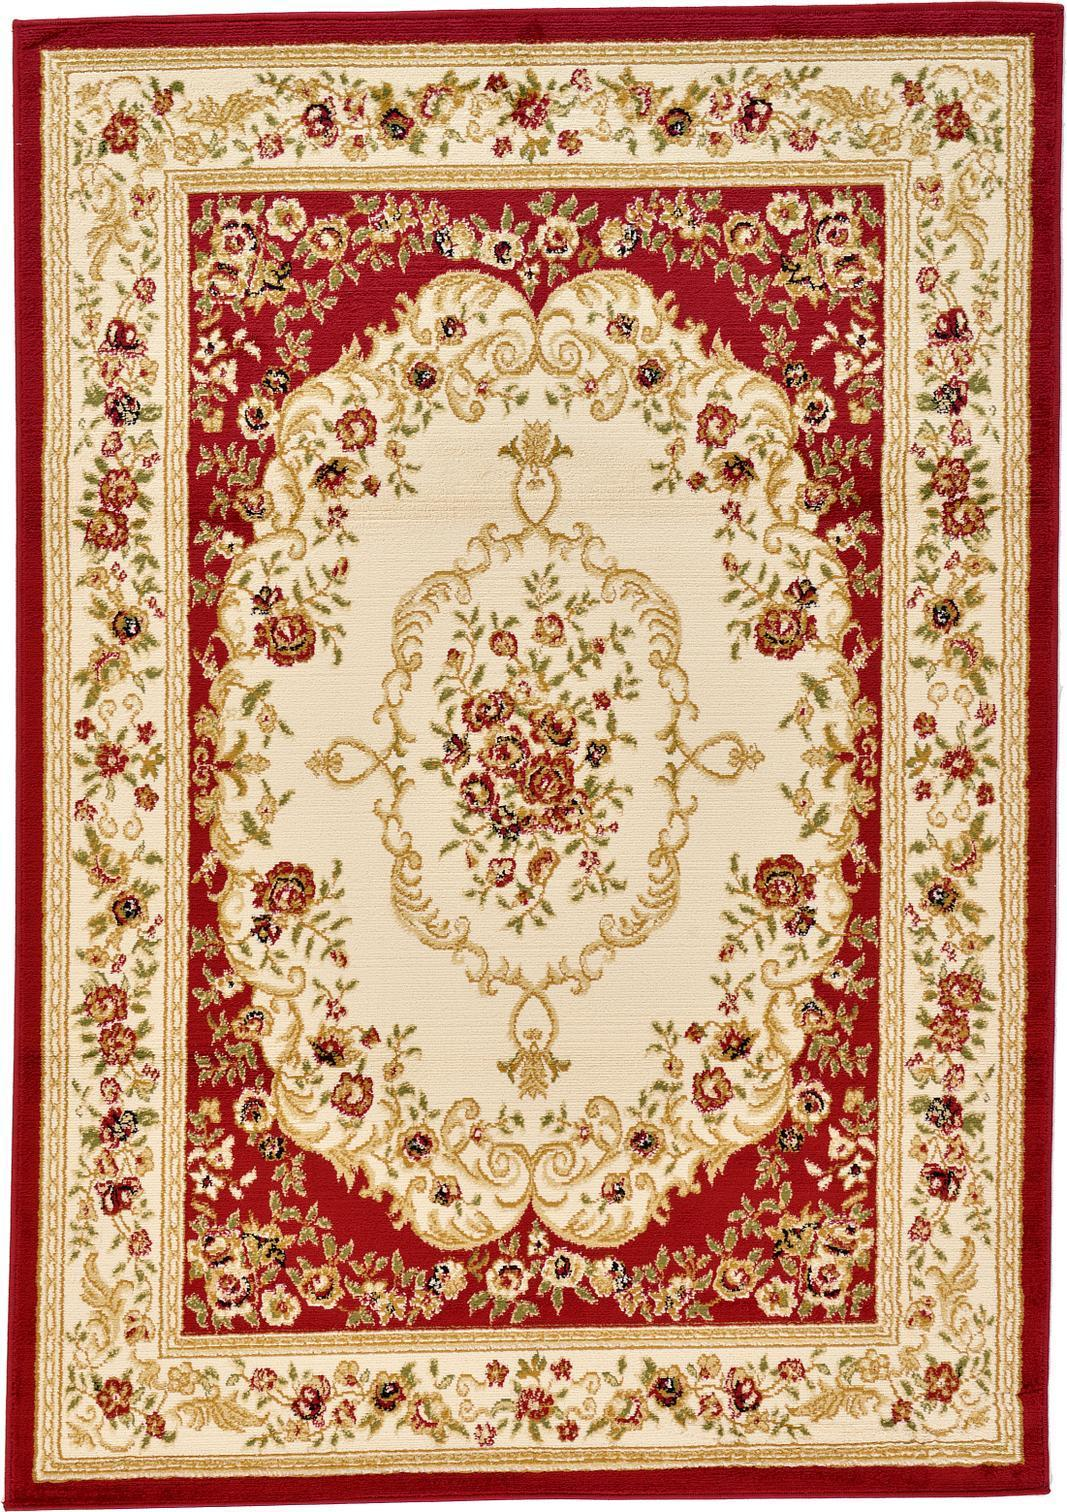 Exciting Aubusson Rugs | Elegant French Aubusson Rug Designs